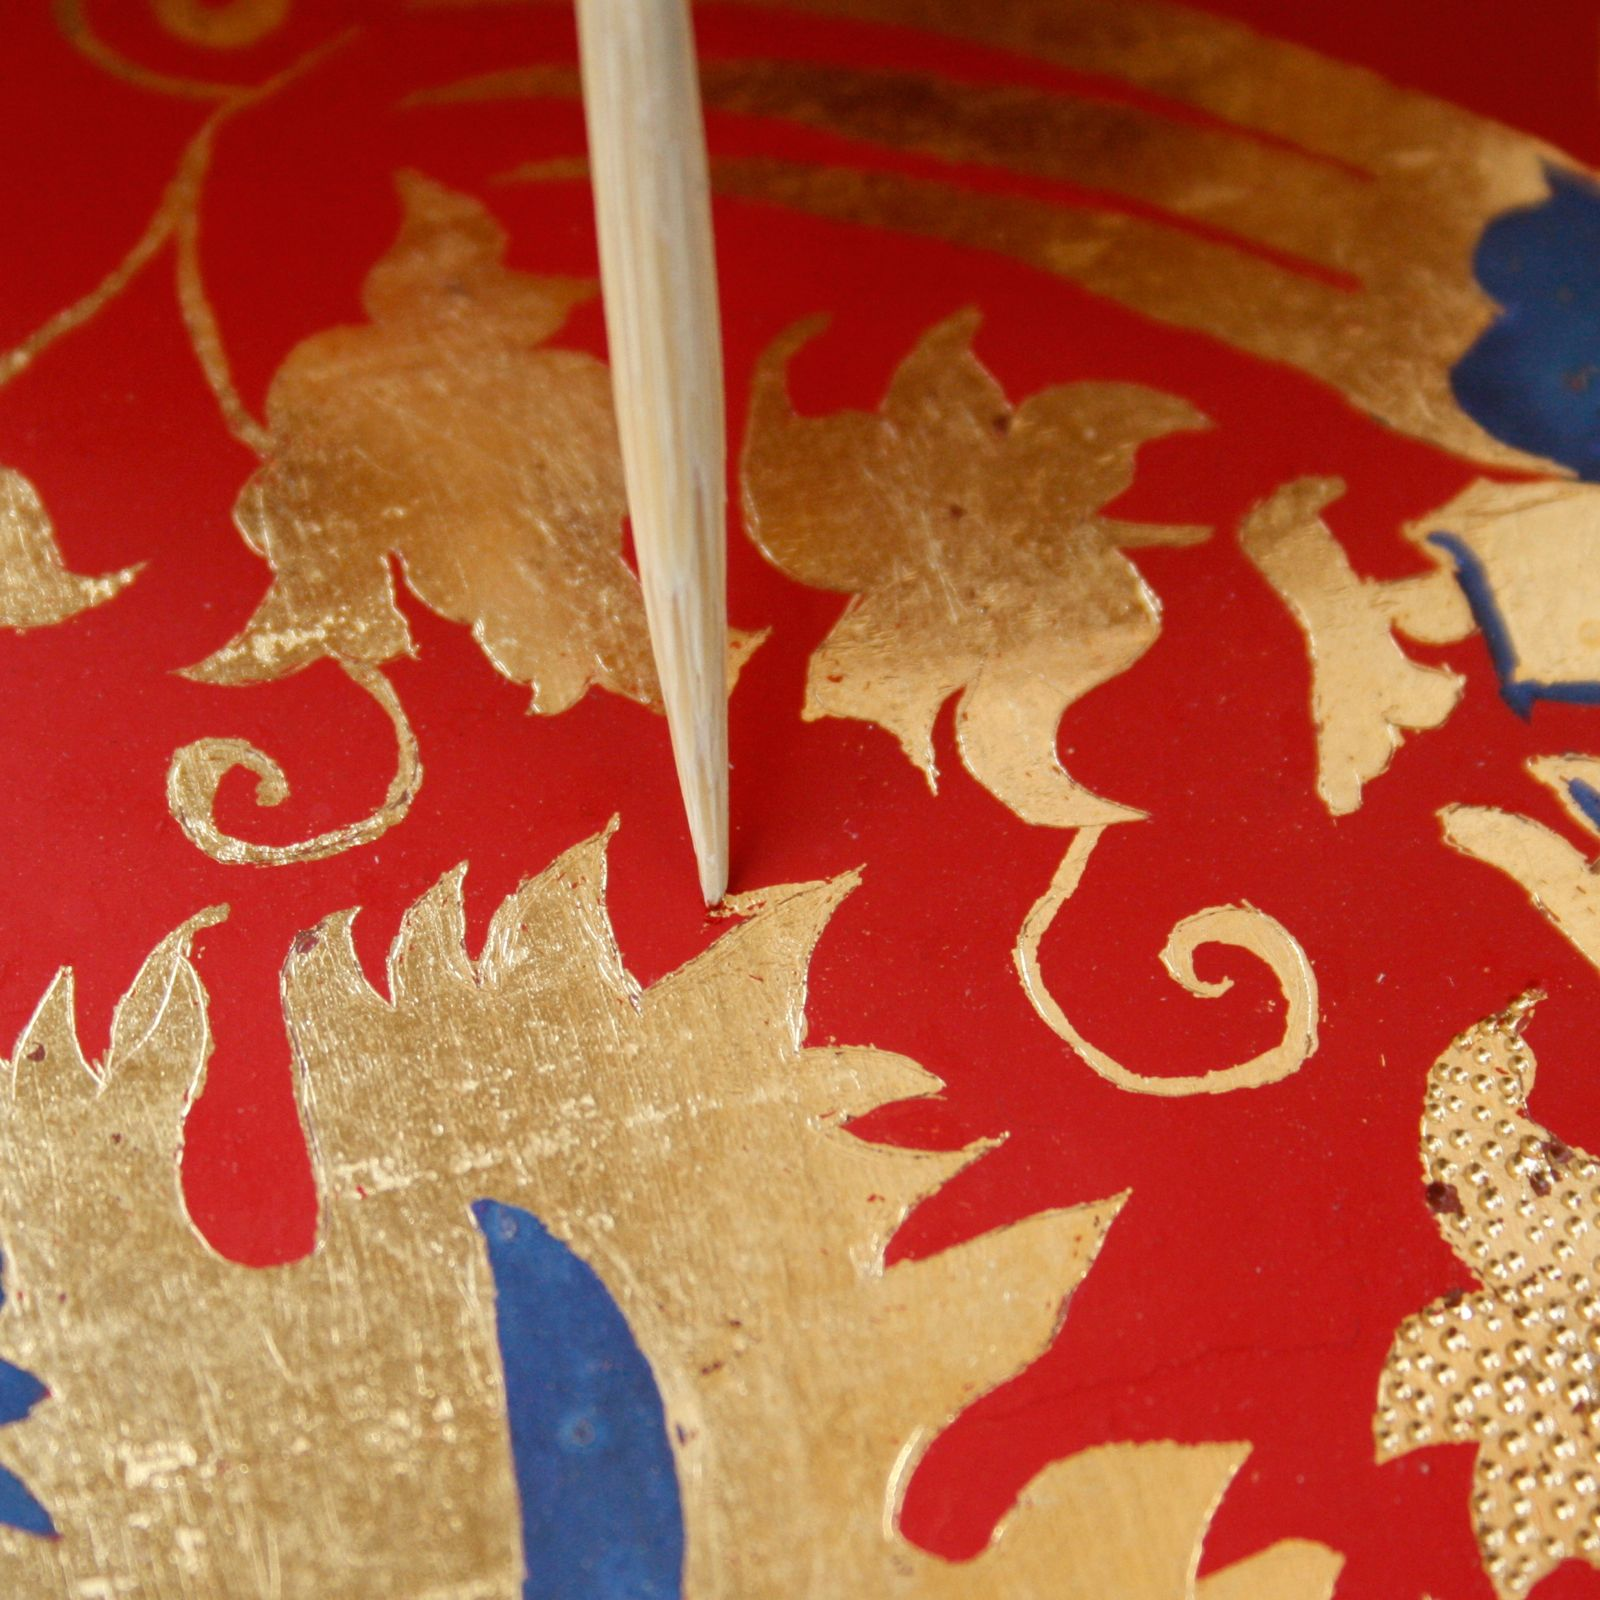 The patterns are made using sgraffito. Red paint is scraped away using a bamboo stick, revealing the gold underneath